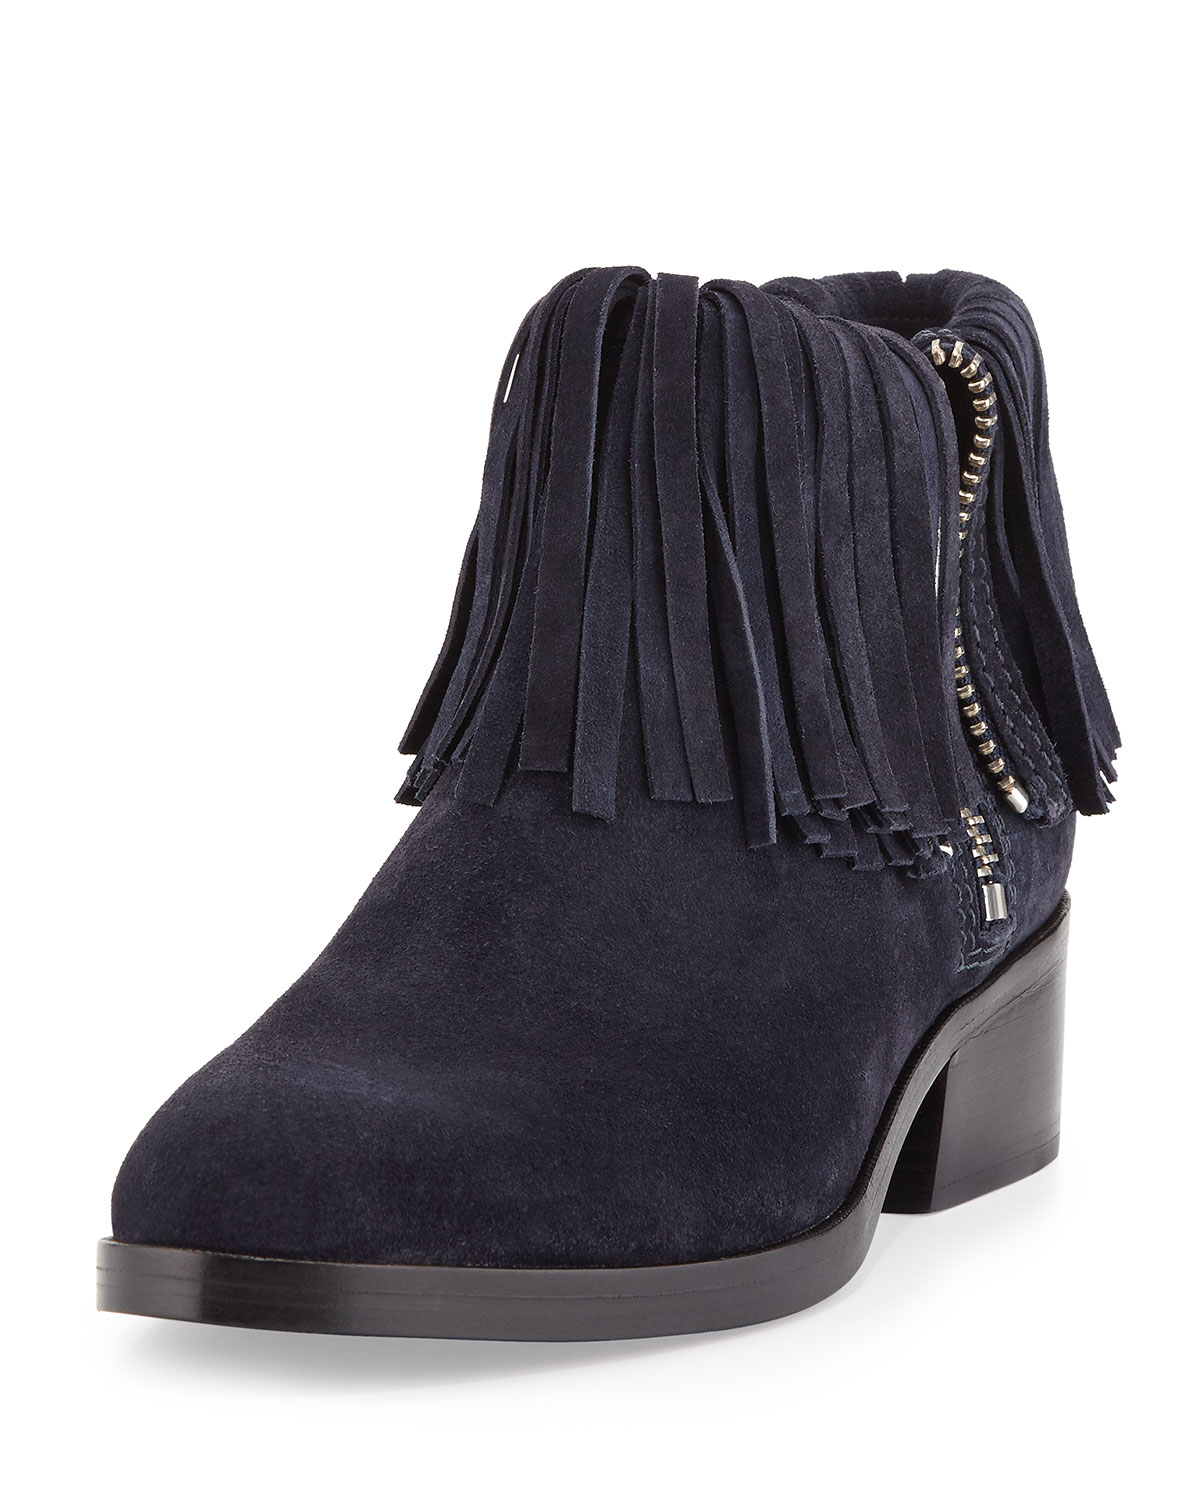 a9c20b774fcd2 3.1 Phillip Lim Alexa Fringed Suede Ankle Bootie